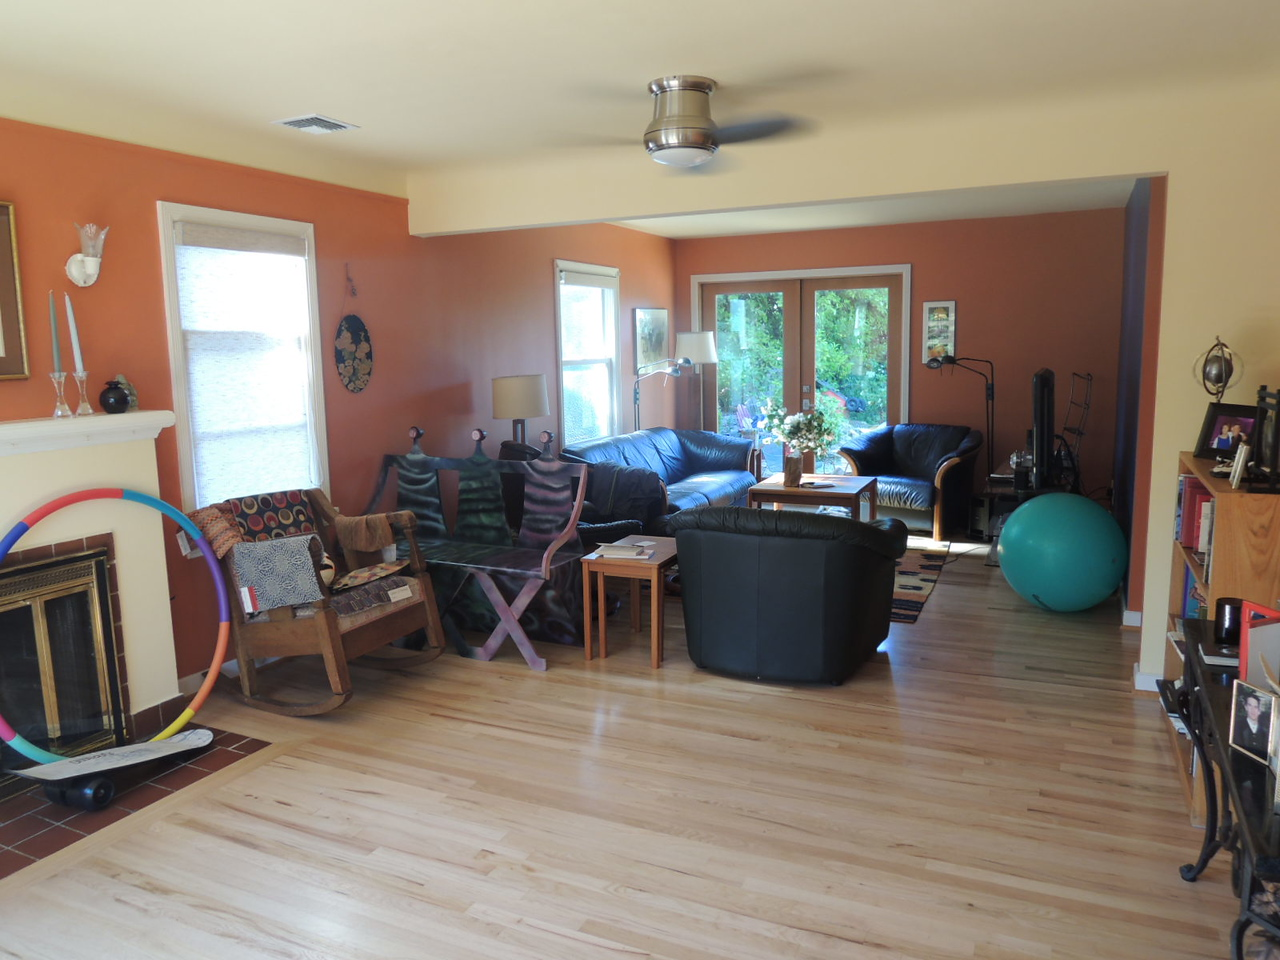 And another view of the living room.  We are still working out how we want to use this space.